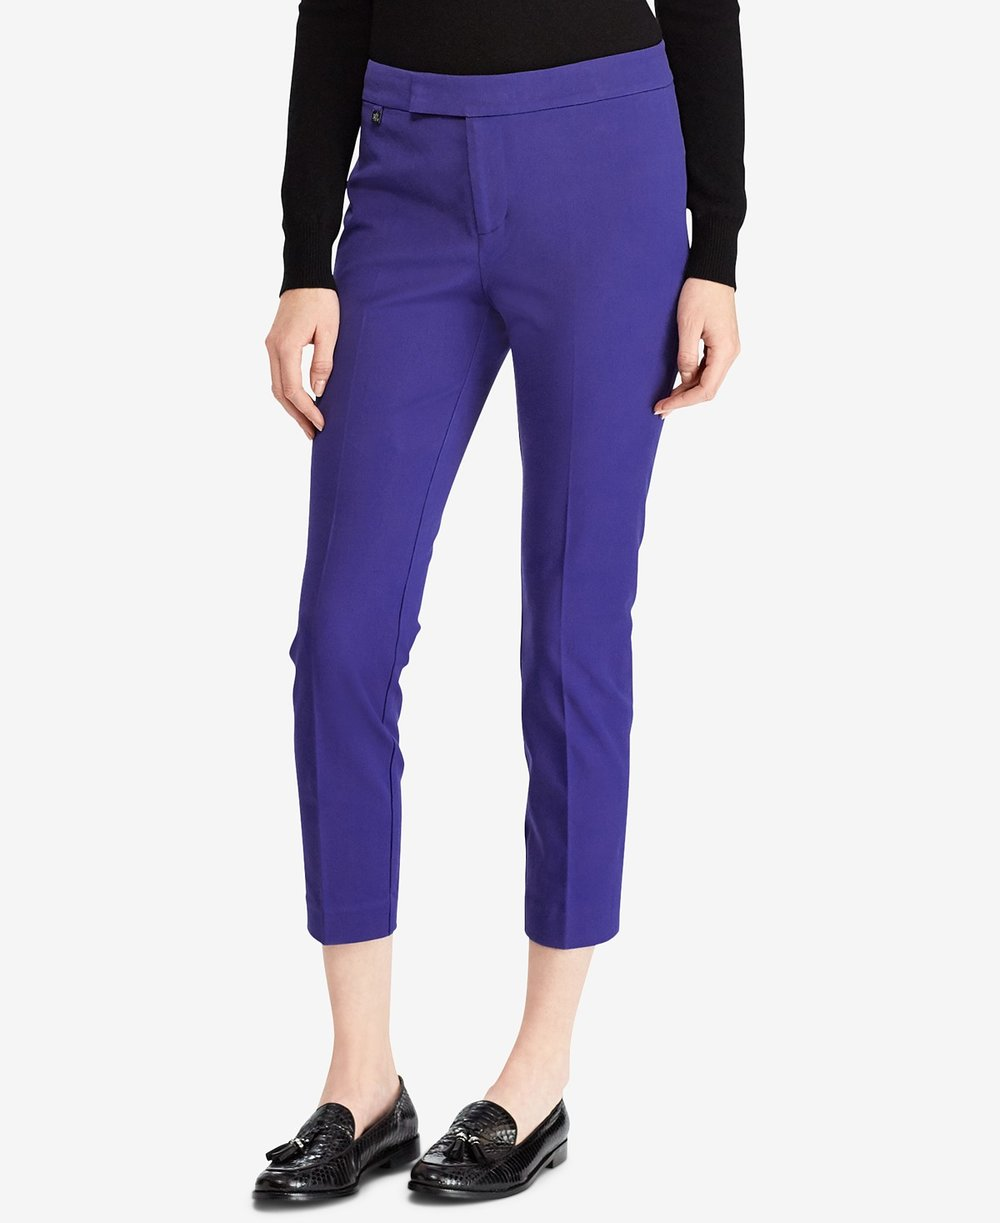 Lauren Ralph Lauren  Petite Twill Skinny Fit Pants. Macy's. Was: $89. Now: $66.